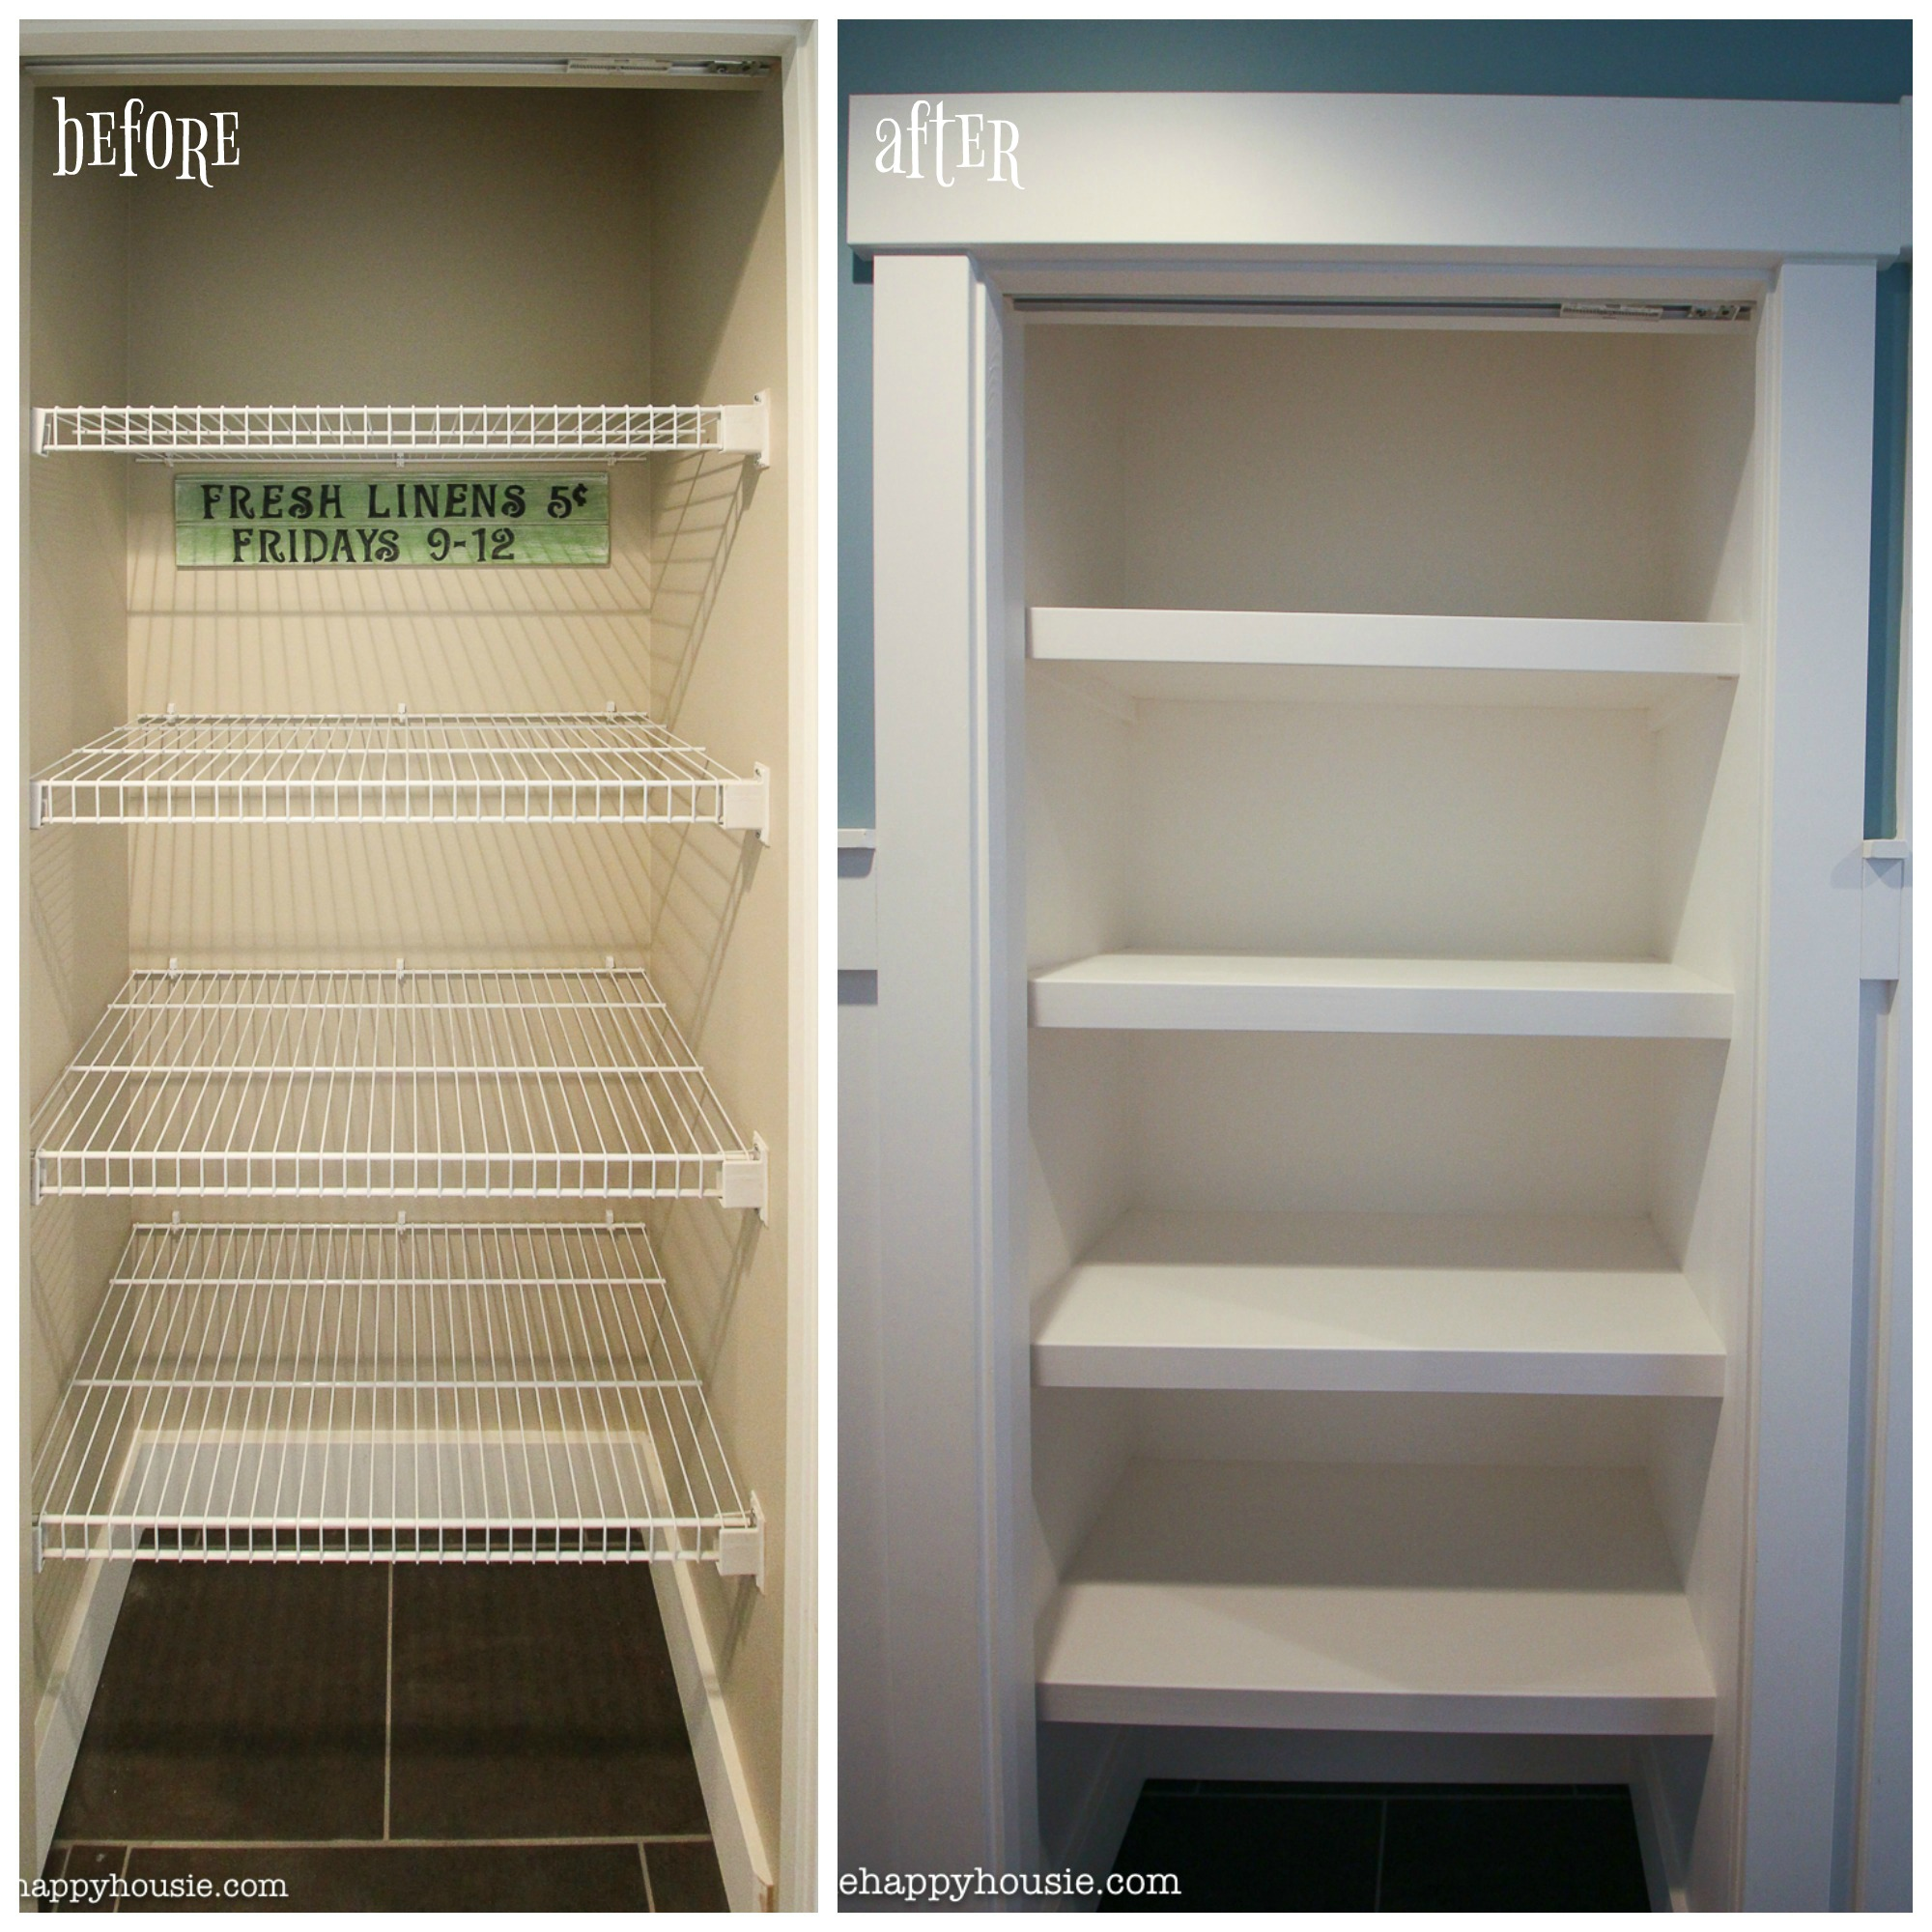 Diy Linen Closet How To Replace Wire Shelves With Diy Custom Wood Shelves